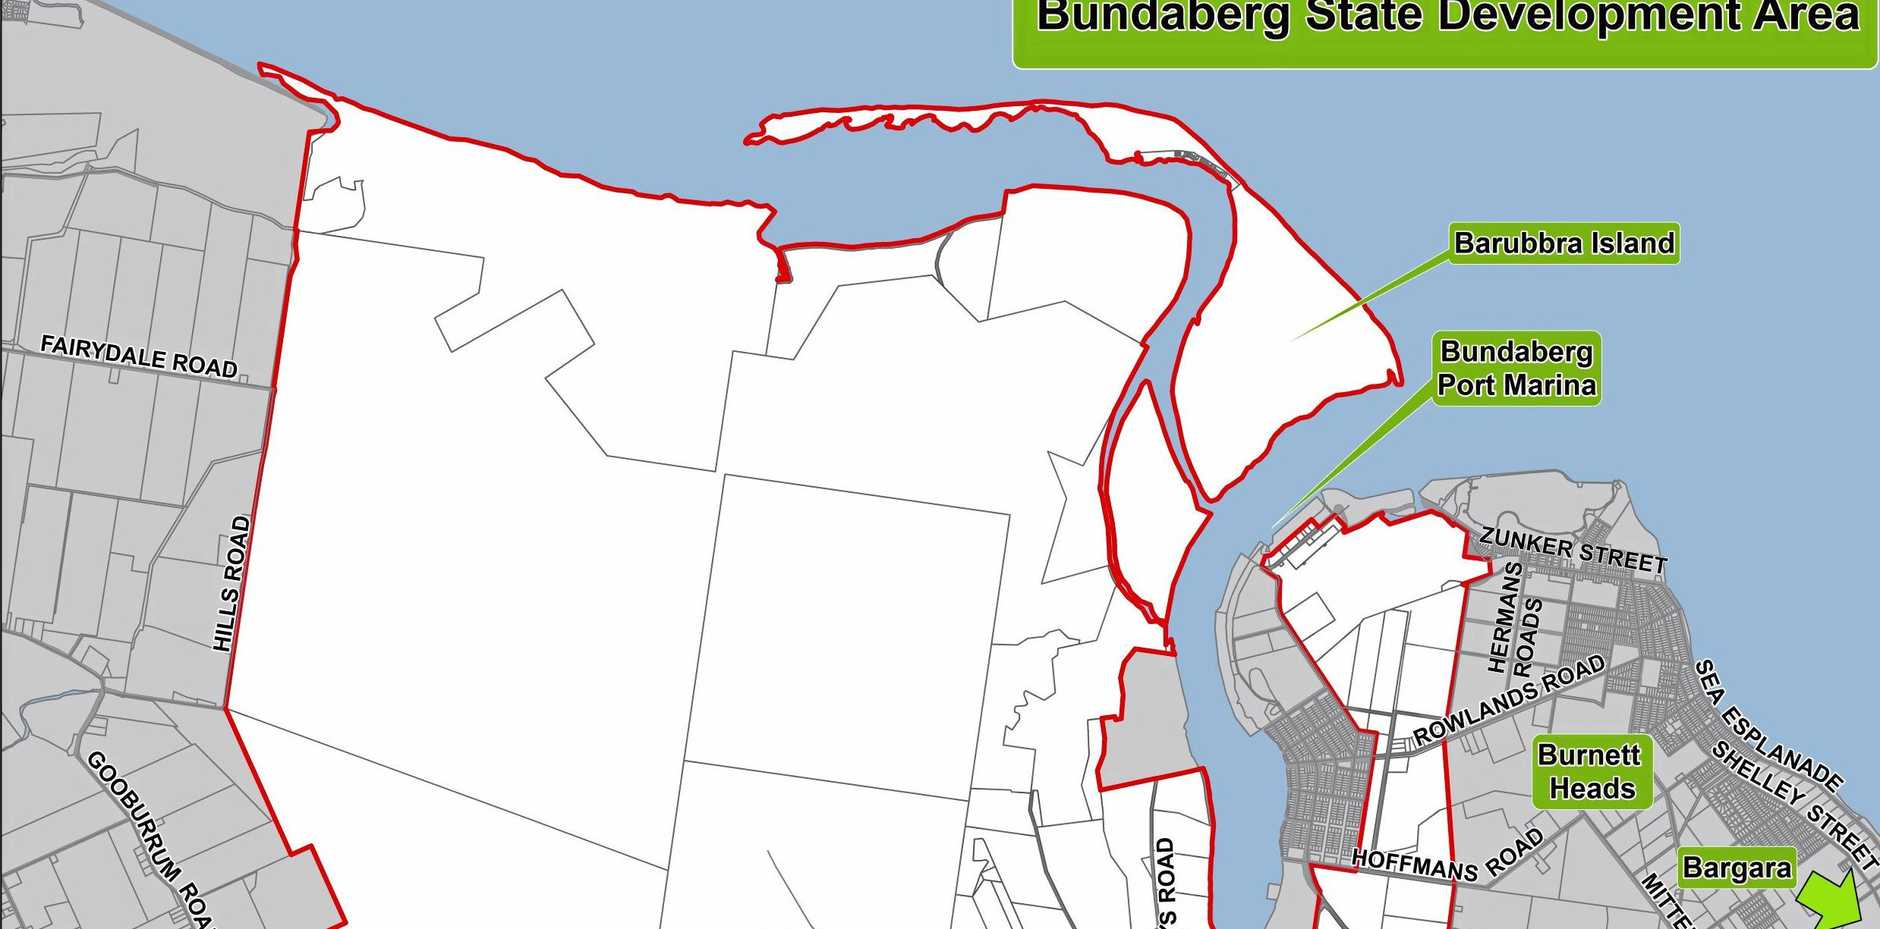 ECONOMIC BOOM: The Bundaberg SDA was declared in February this year and is one of 10 state development areas in Queensland.